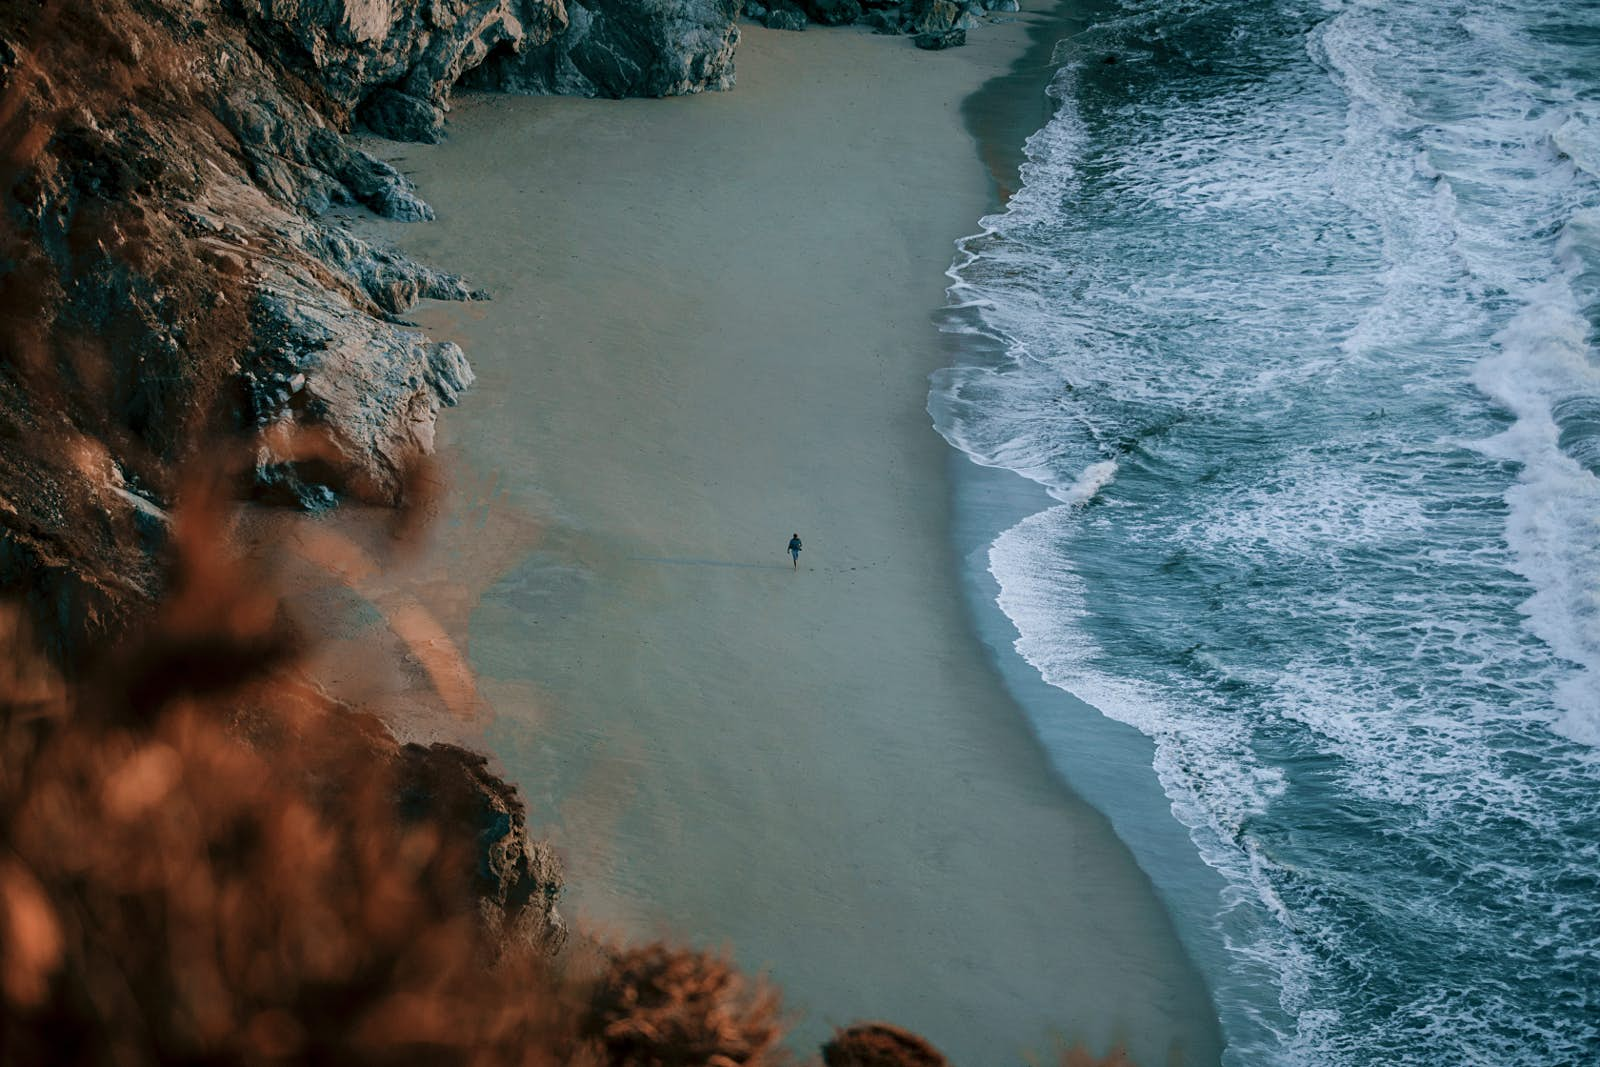 An aerial view of a lone figure walking the beach in Big Sur in California, under a moody light; the sea looks powerful and there are cliffs behind the beach.